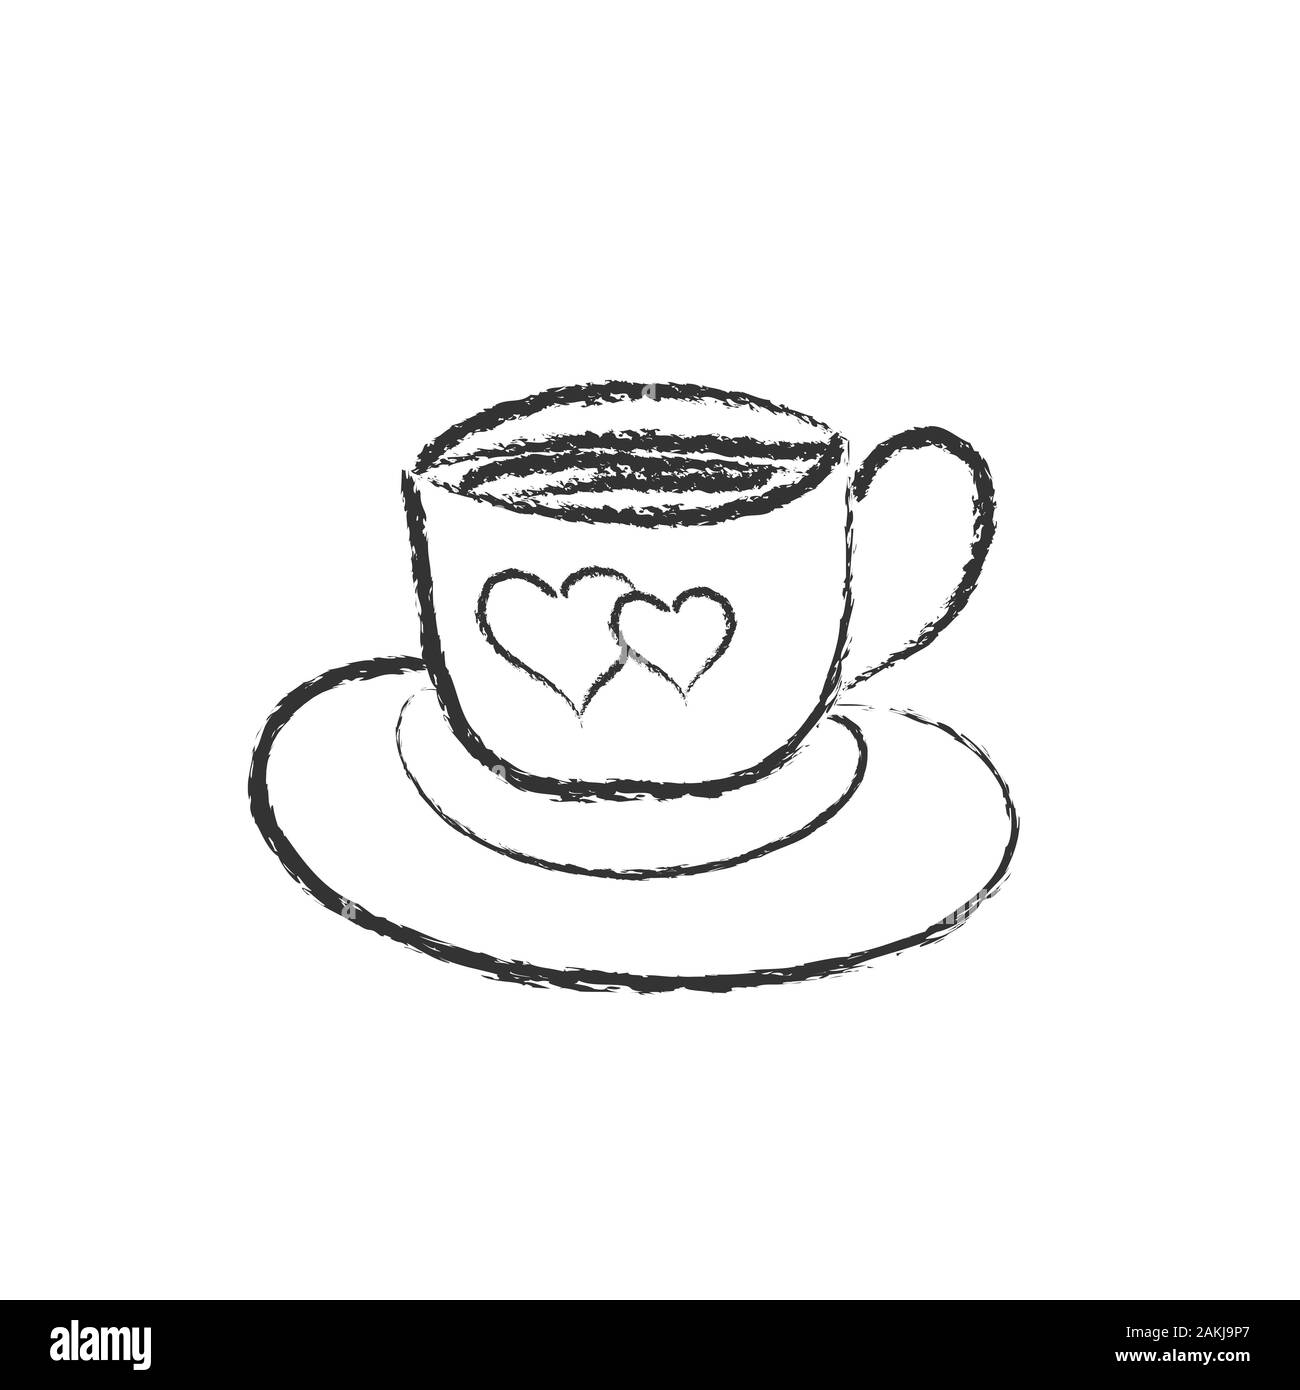 Vector Pencil Drawing Of A Cup Of Coffee Or Tea With A Heart On A Saucer In The Style Of Doodle For Postcards Posters Stickers And Seasonal Design I Stock Vector Image